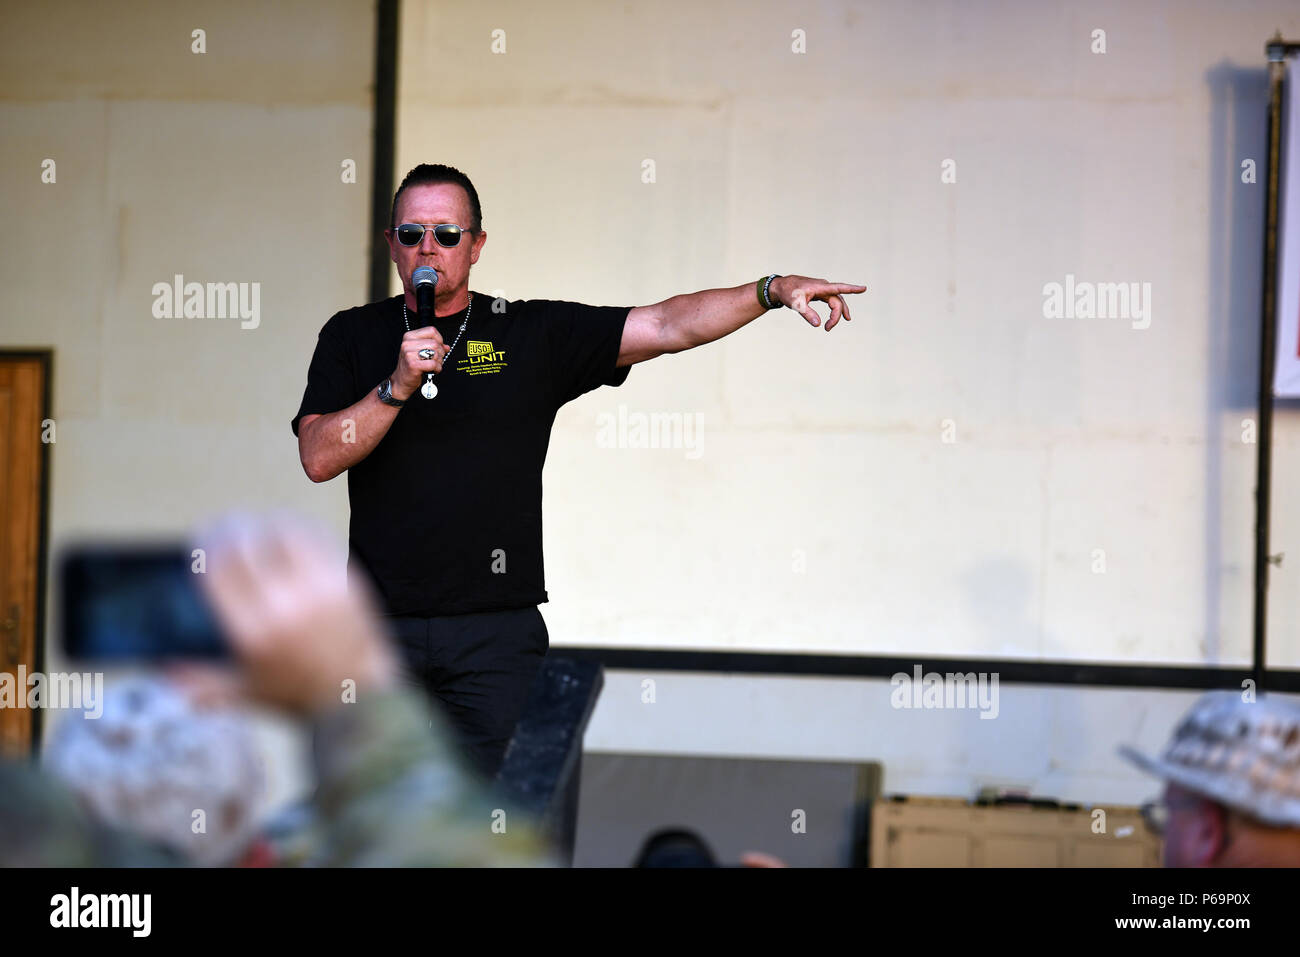 Actor Robert Patrick during a USO show as Army Gen. Frank Grass, chief, National Guard Bureau, leads the first-ever National Guard USO Tour, Kuwait, May 18, 2016. (U.S. Army National Guard photo by Sgt. 1st Class Jim Greenhill) (Released) - Stock Image